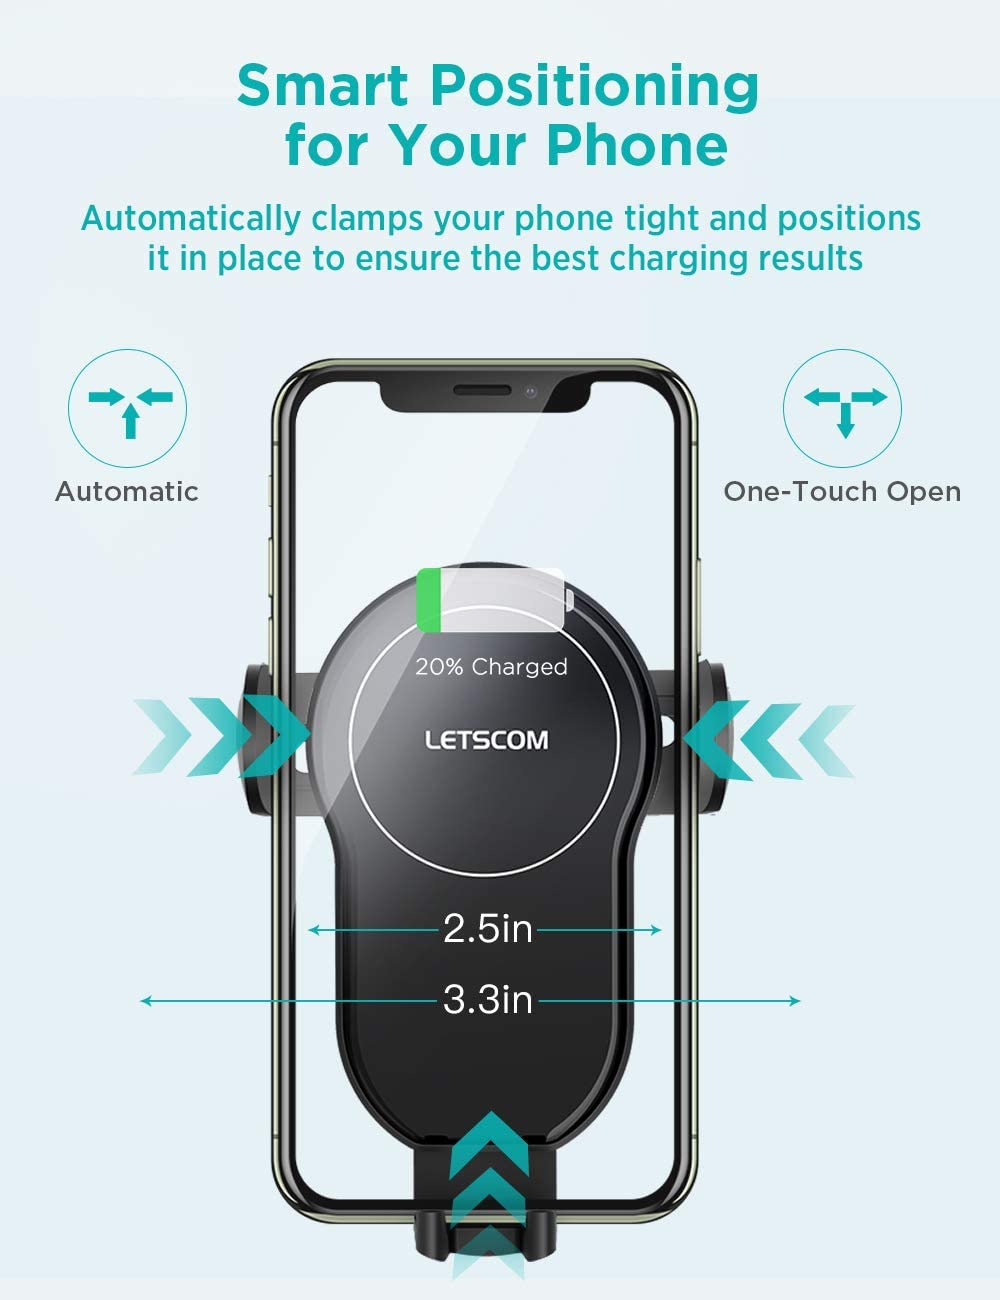 LETSCOM Wireless Car Charger,15W Qi Fast Charging Car Mount Charger Auto-Clamping Smart Positioning Air Vent Phone Holder Compatible with iPhone11//11Pro//11Pro Max//XS//XR//X//8//8+,SamsungS10//S10+//S9//S8